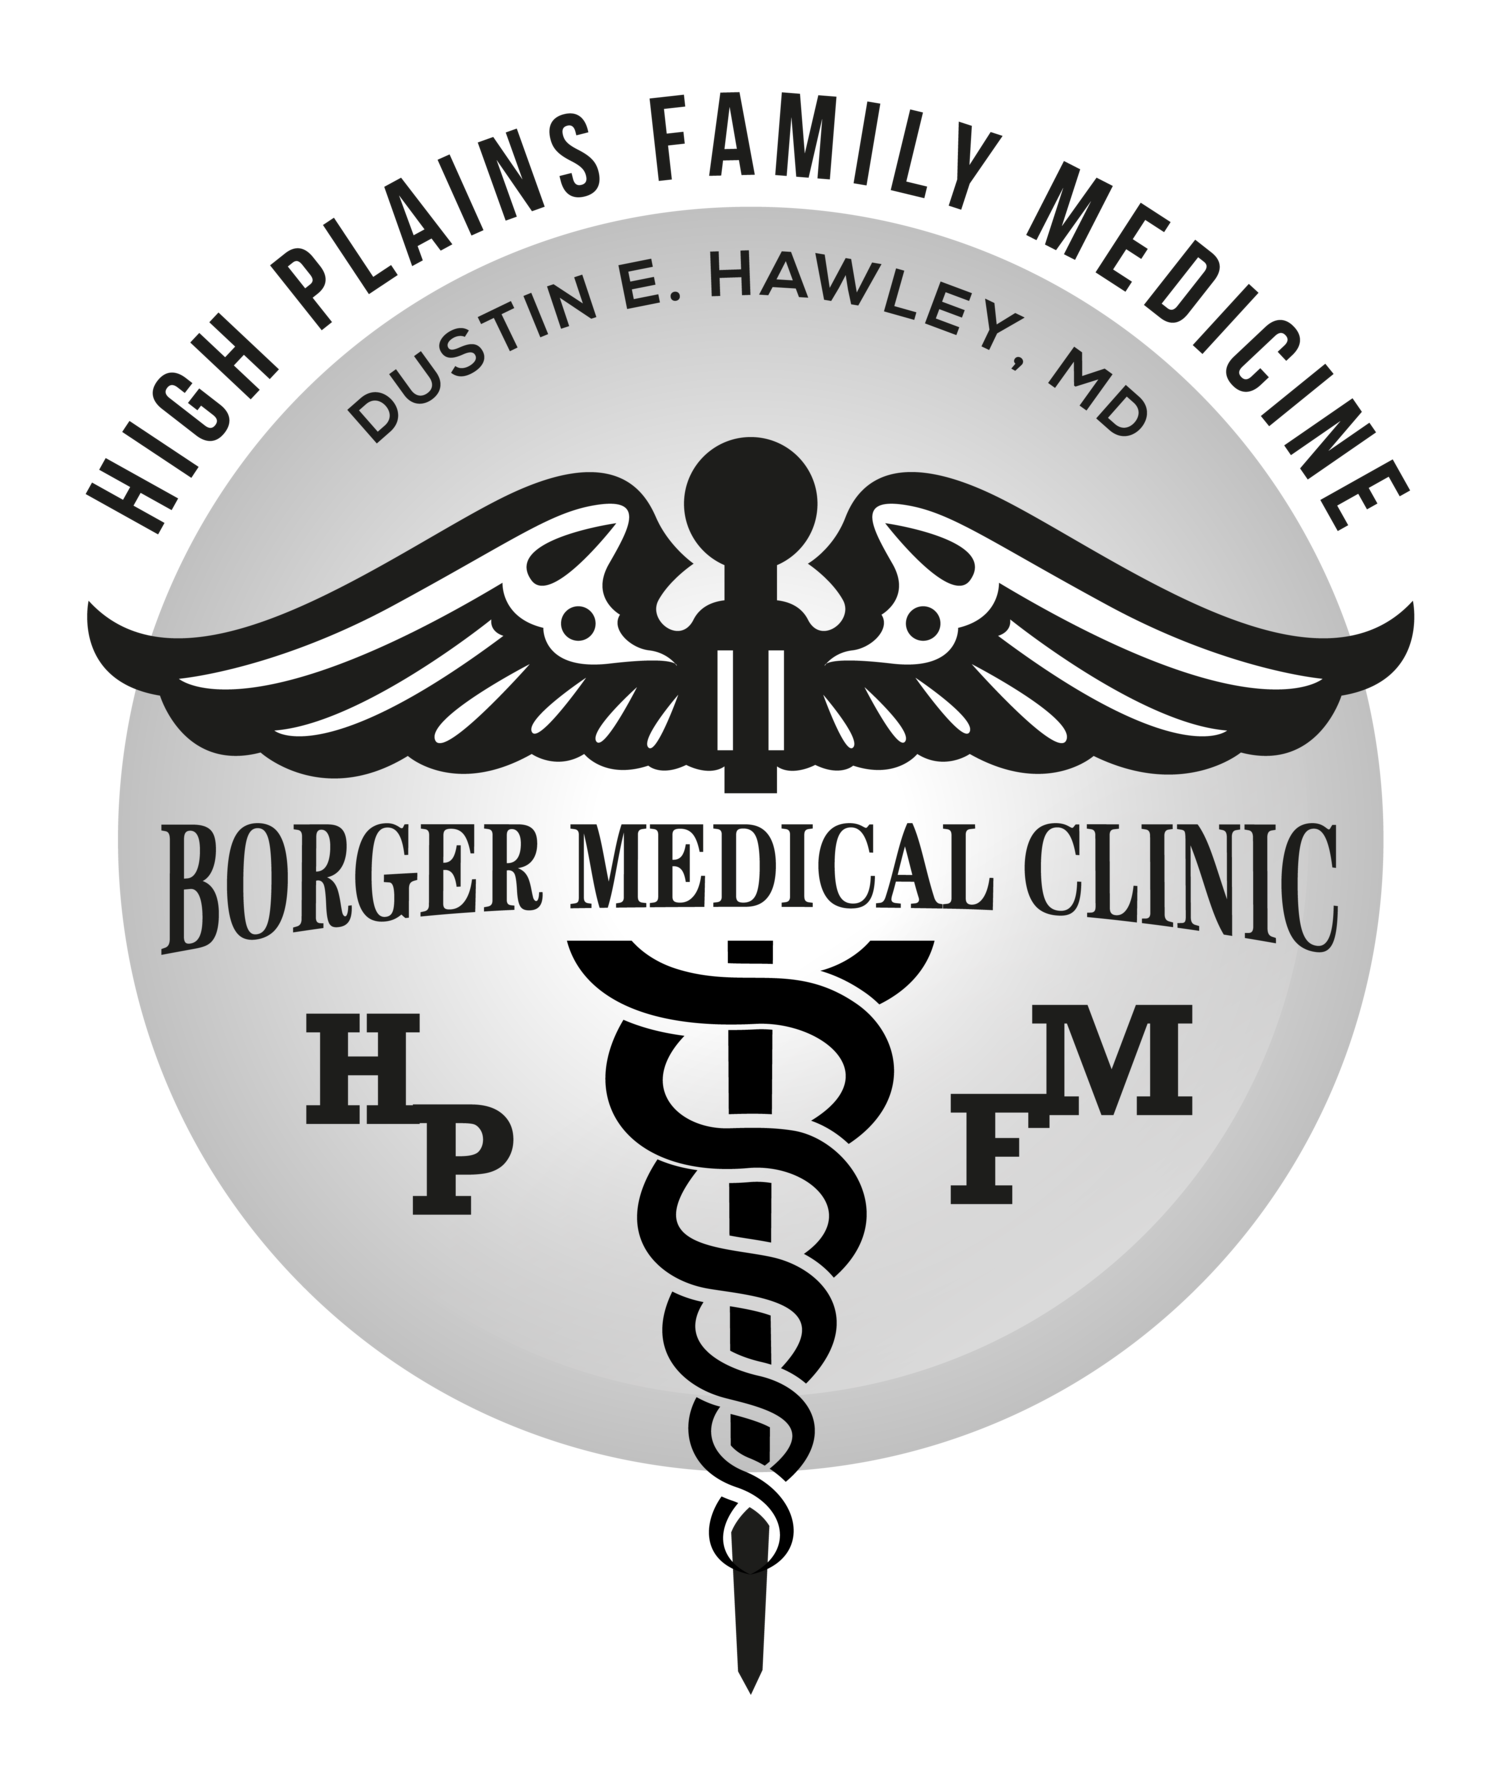 Our practice high plains family medicine pa borger medical clinic high plains family medicine pa borger medical clinic biocorpaavc